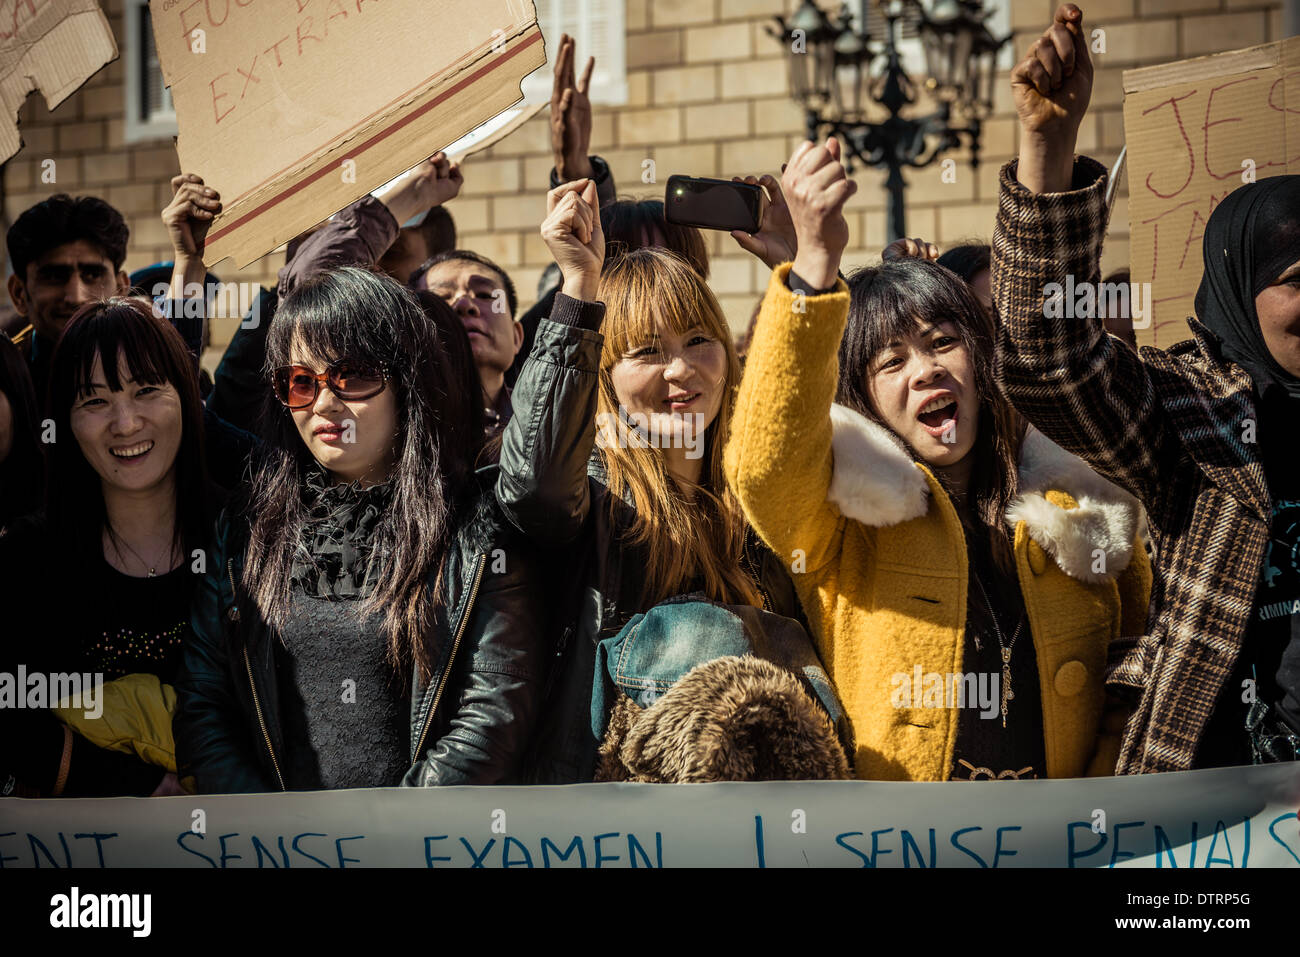 Barcelona, Spain. February 23rd, 2014: Immigrants behind their banner concentrate for immigration rights and papers Stock Photo